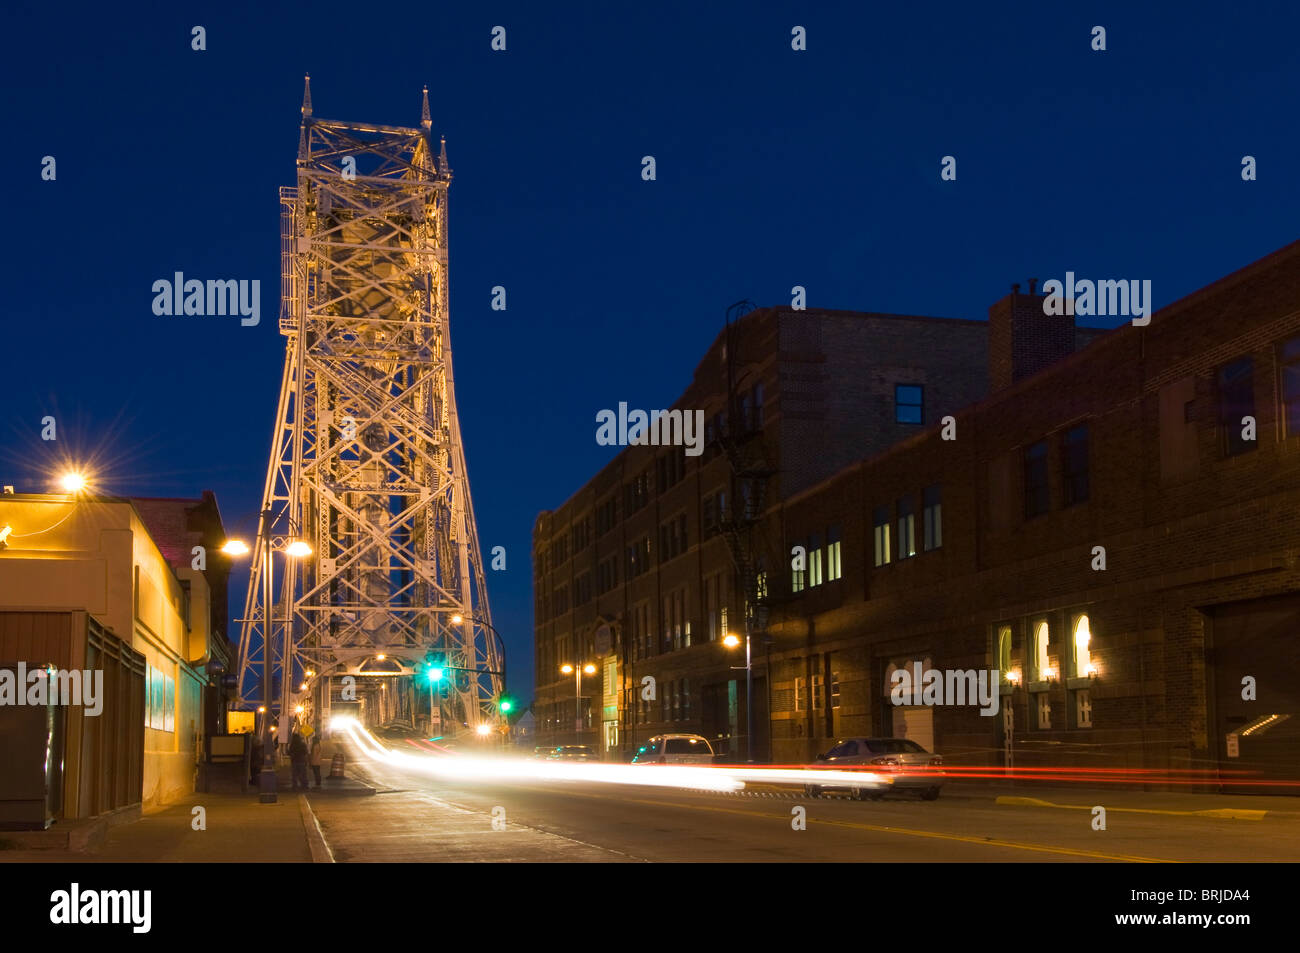 Aerial lift bridge in Duluth, Minnesota as seen from Canal Street at night. - Stock Image